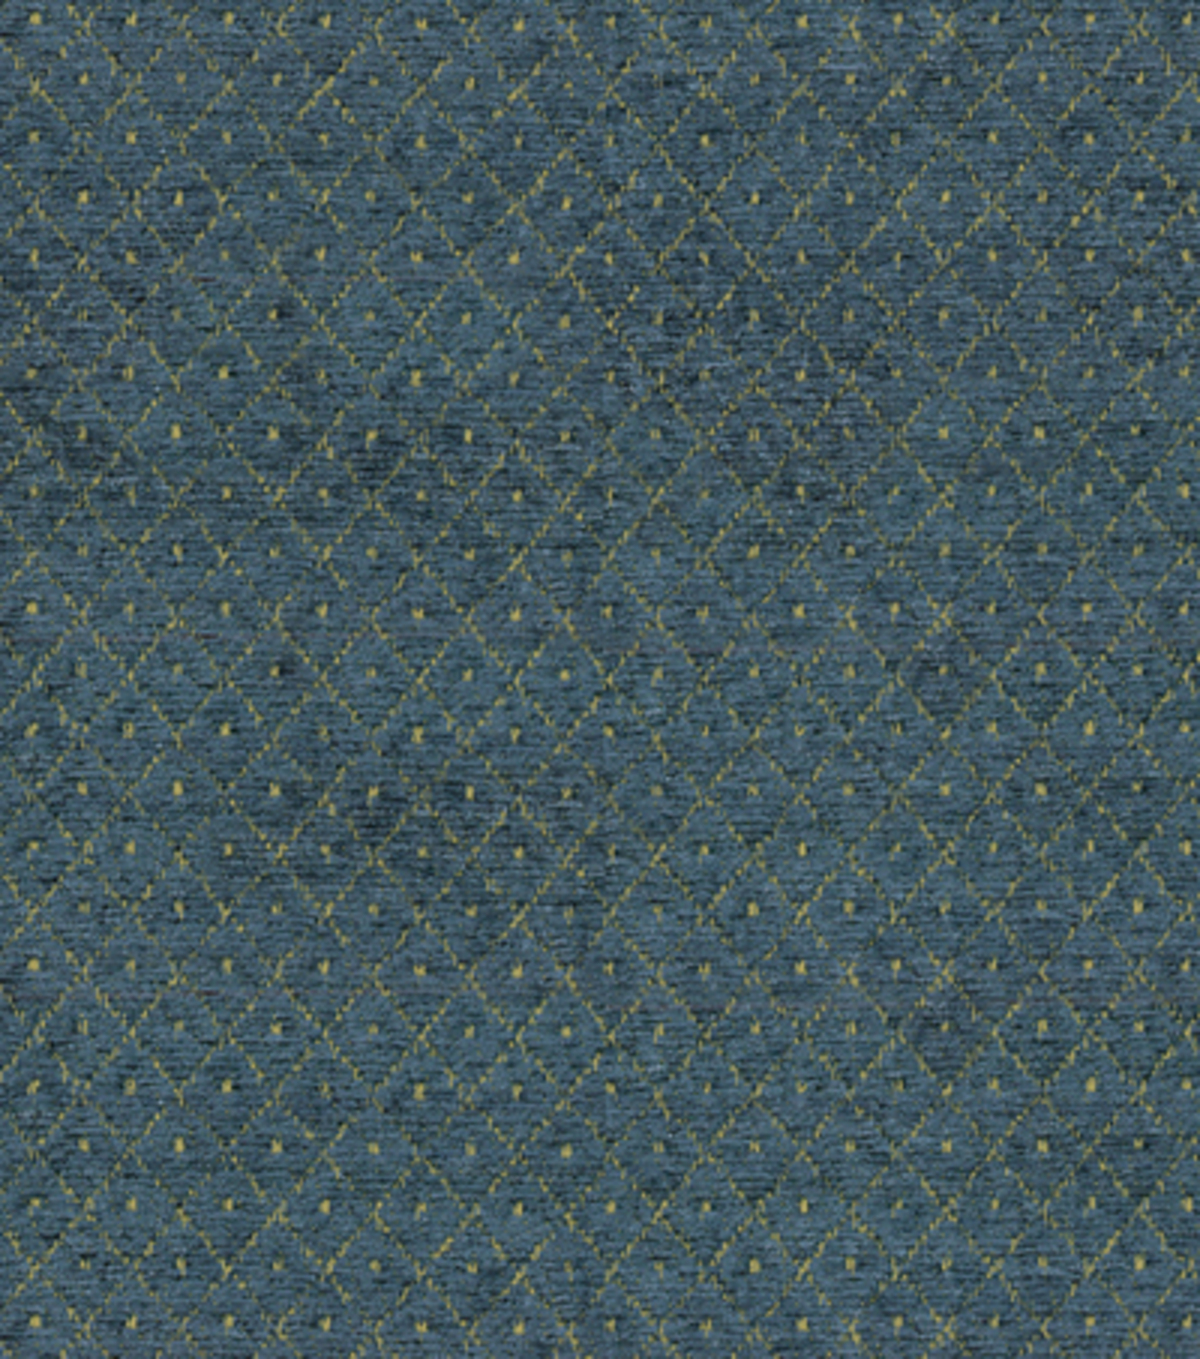 Home Decor 8\u0022x8\u0022 Fabric Swatch-Waverly Connemara/Denim